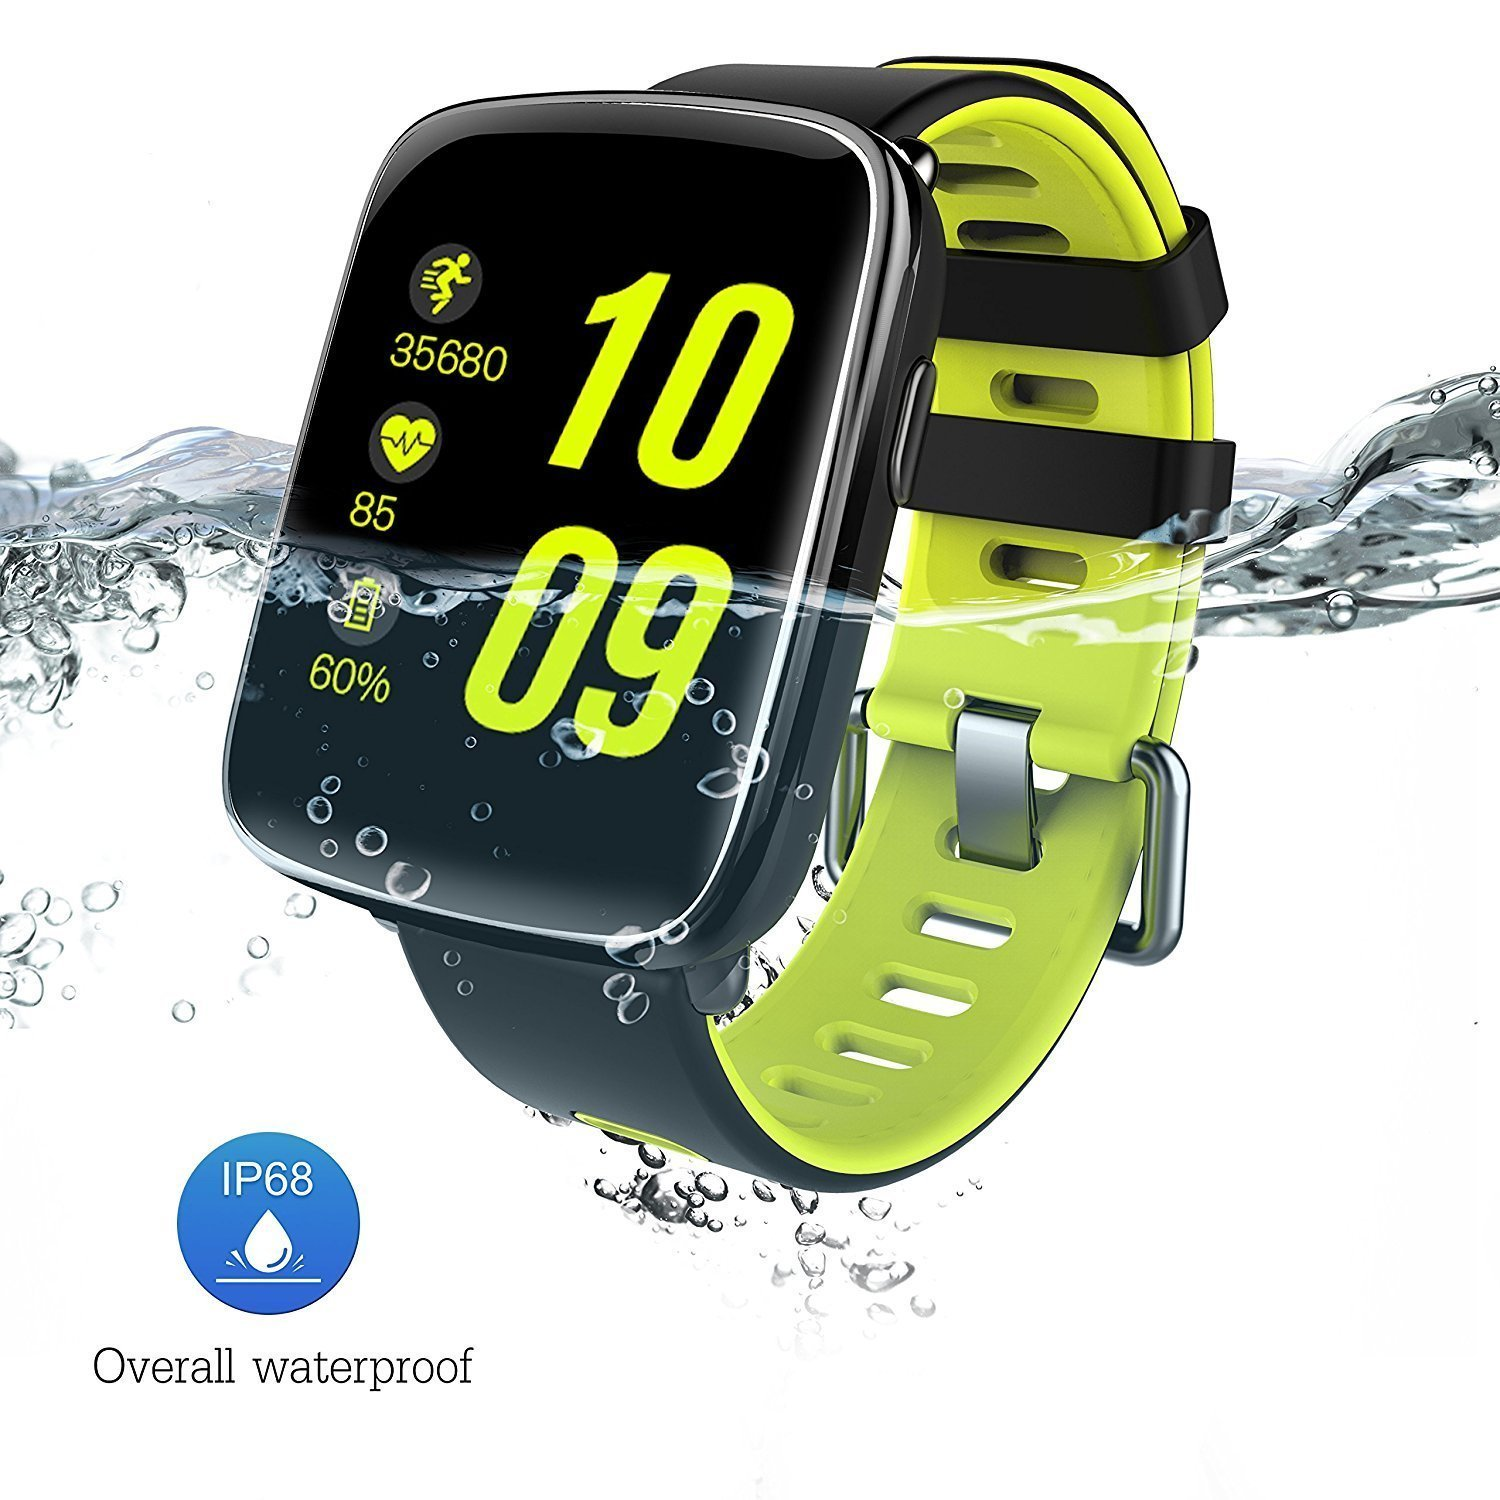 Waterproof Bluetooth Smart Watch Phone Mate / Fitness Sport Smart Watch IP68 with Heart Rate Pedometer Camera and Sleep Monitor for iOS and Android Smartphones GV68 by Emperor of Gadgets